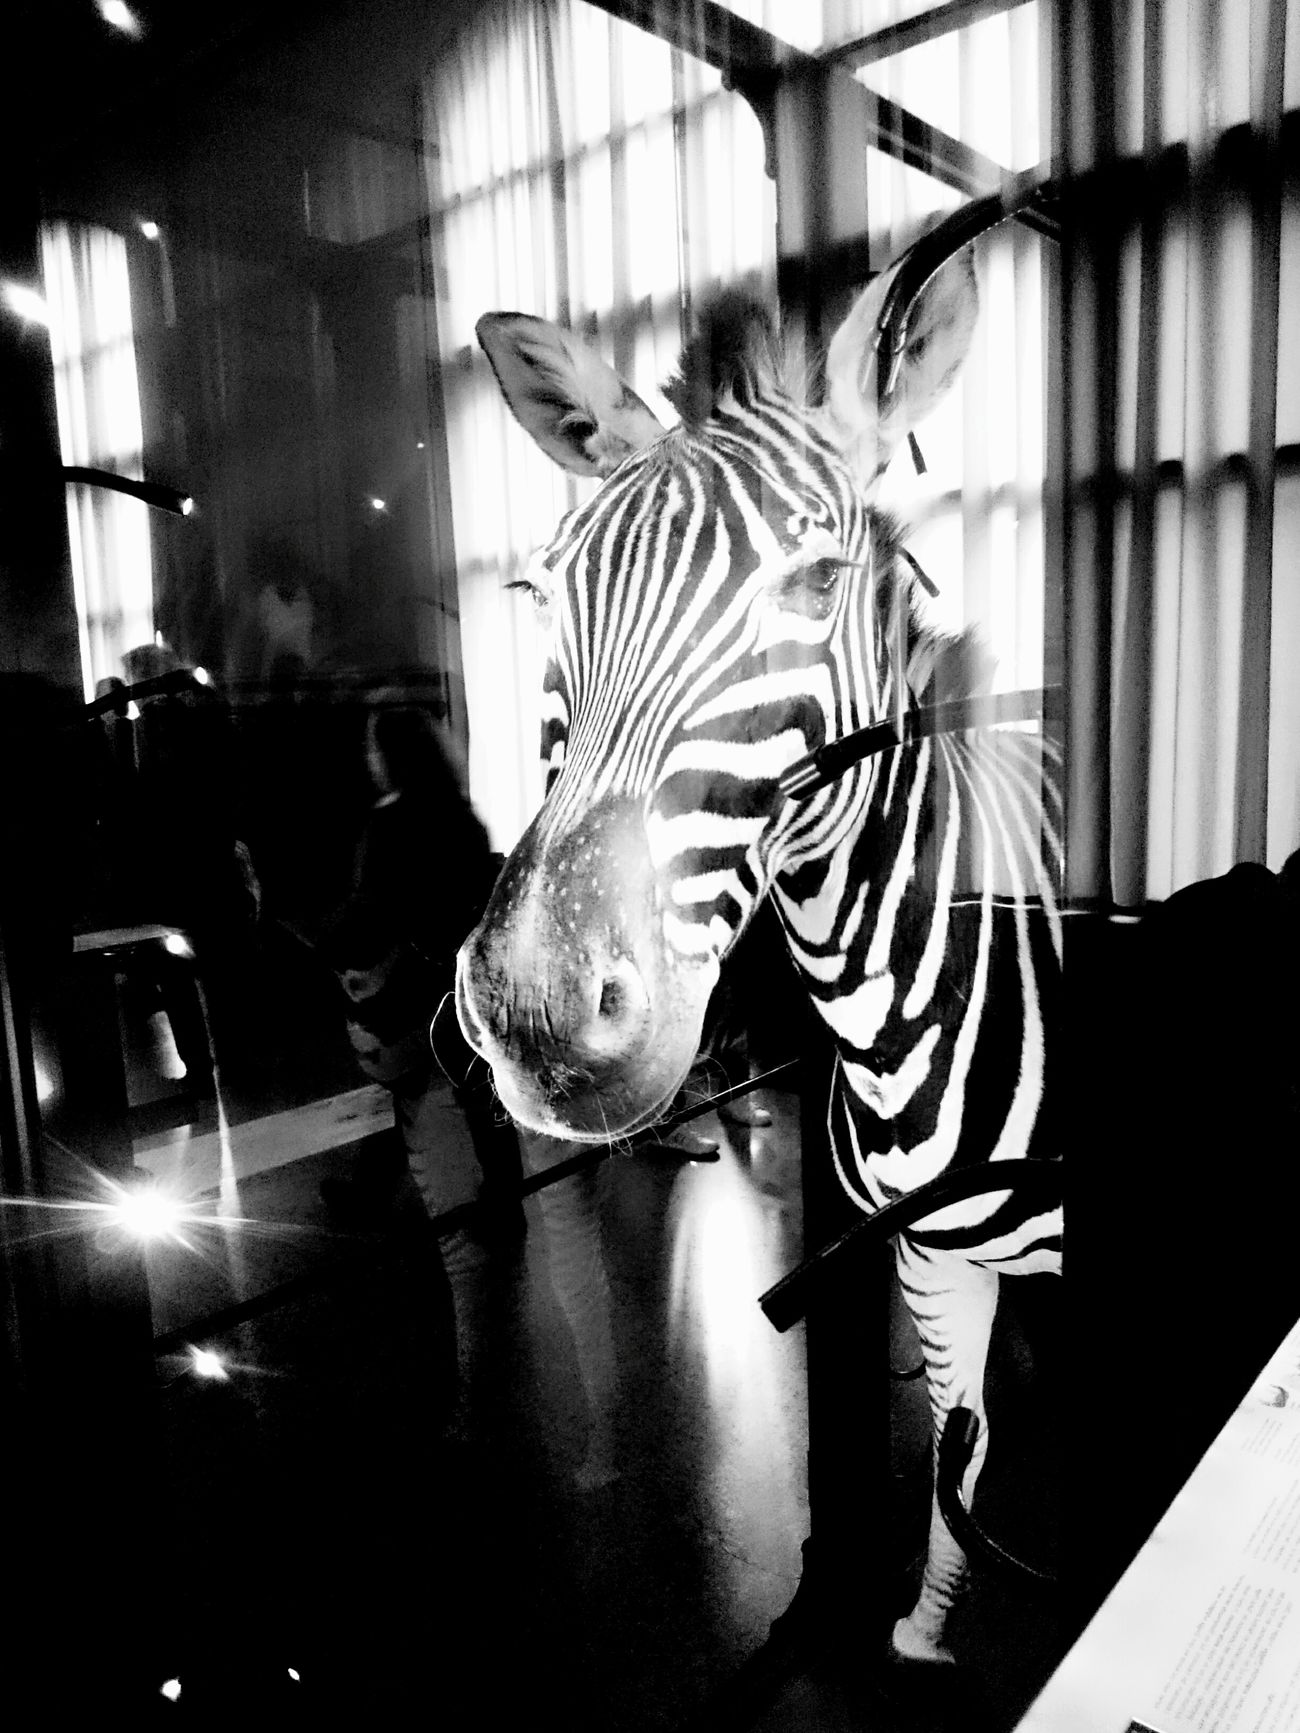 🦄 Zebra Museum Naturkundemuseum Animal Berlin Blackandwhite Black And White Photography Black And White Collection